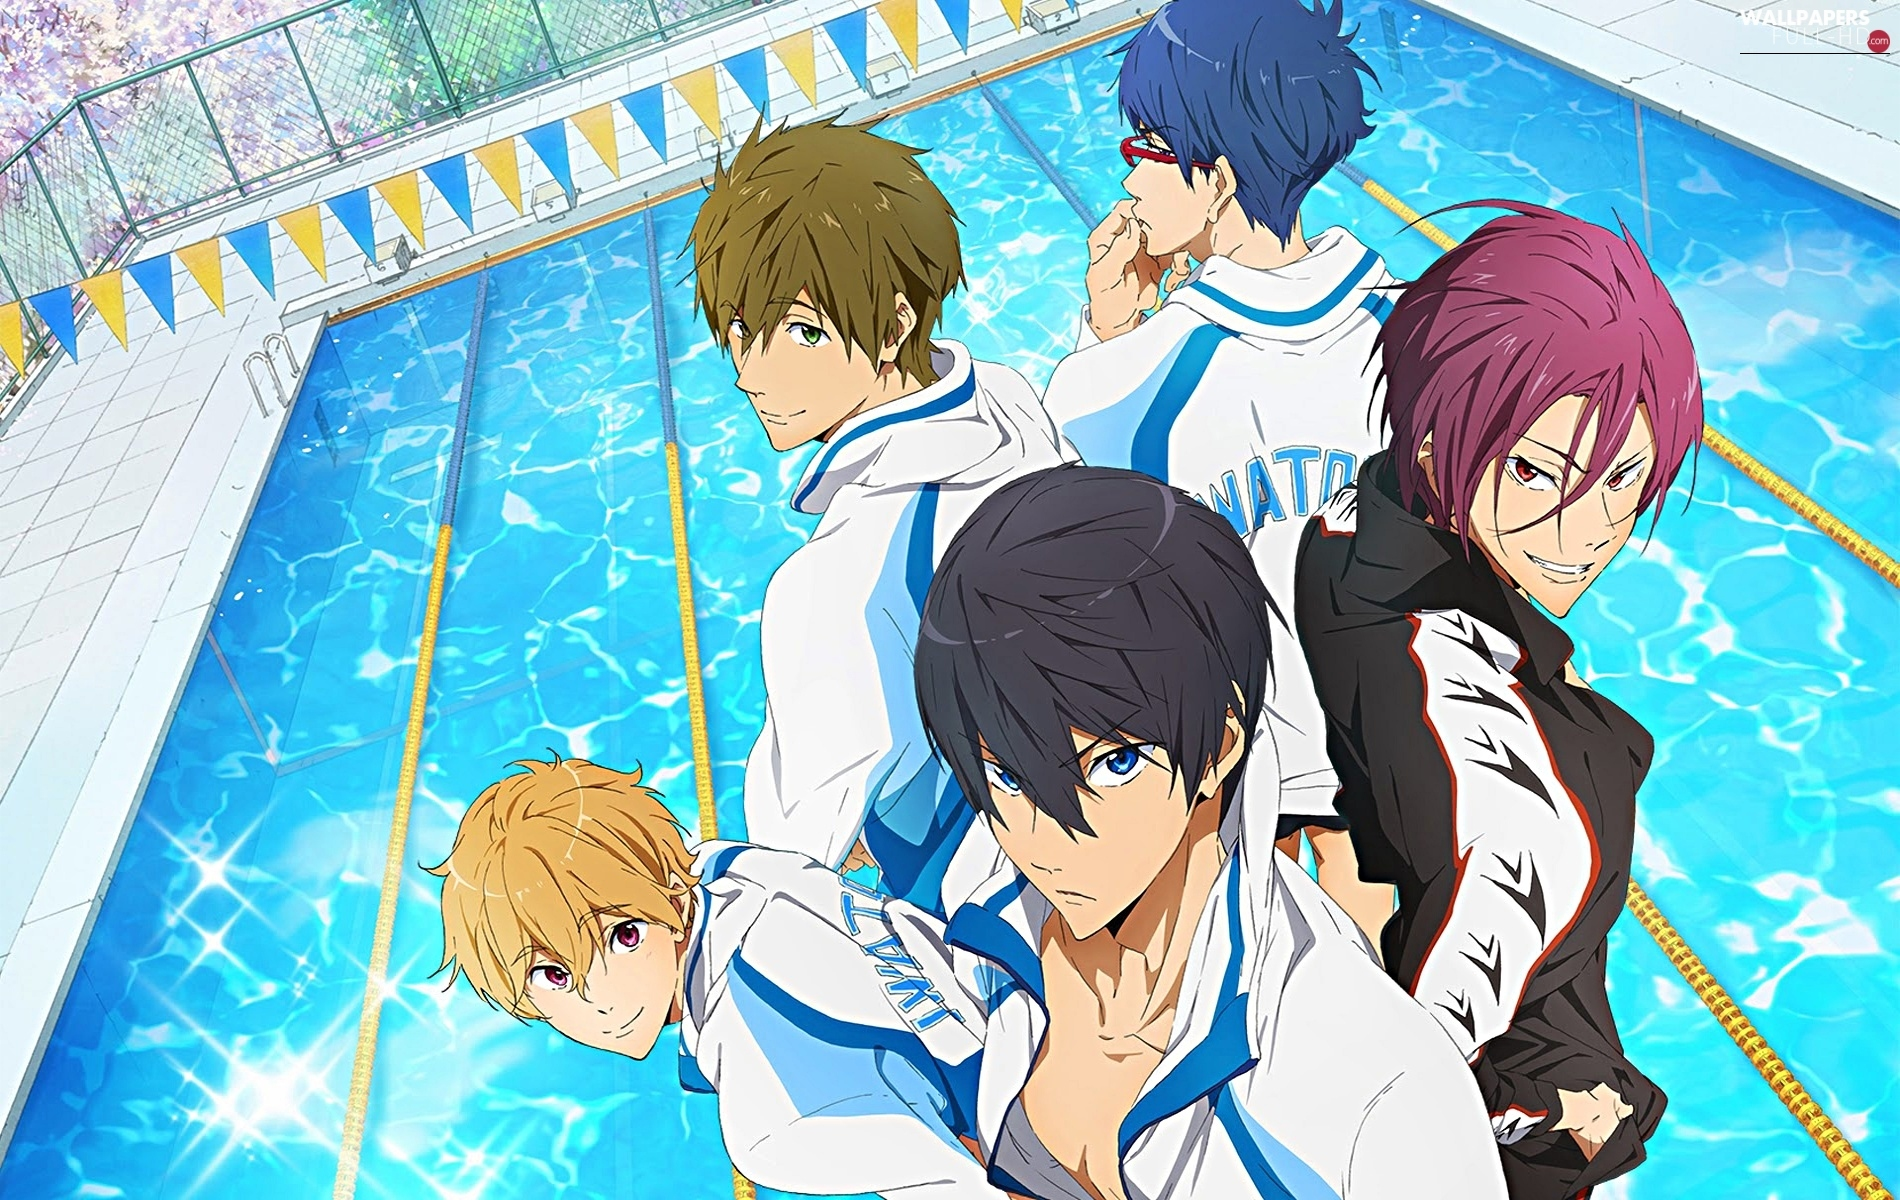 Pool, Anime, Free!, boys, Iwatobi Swim Club